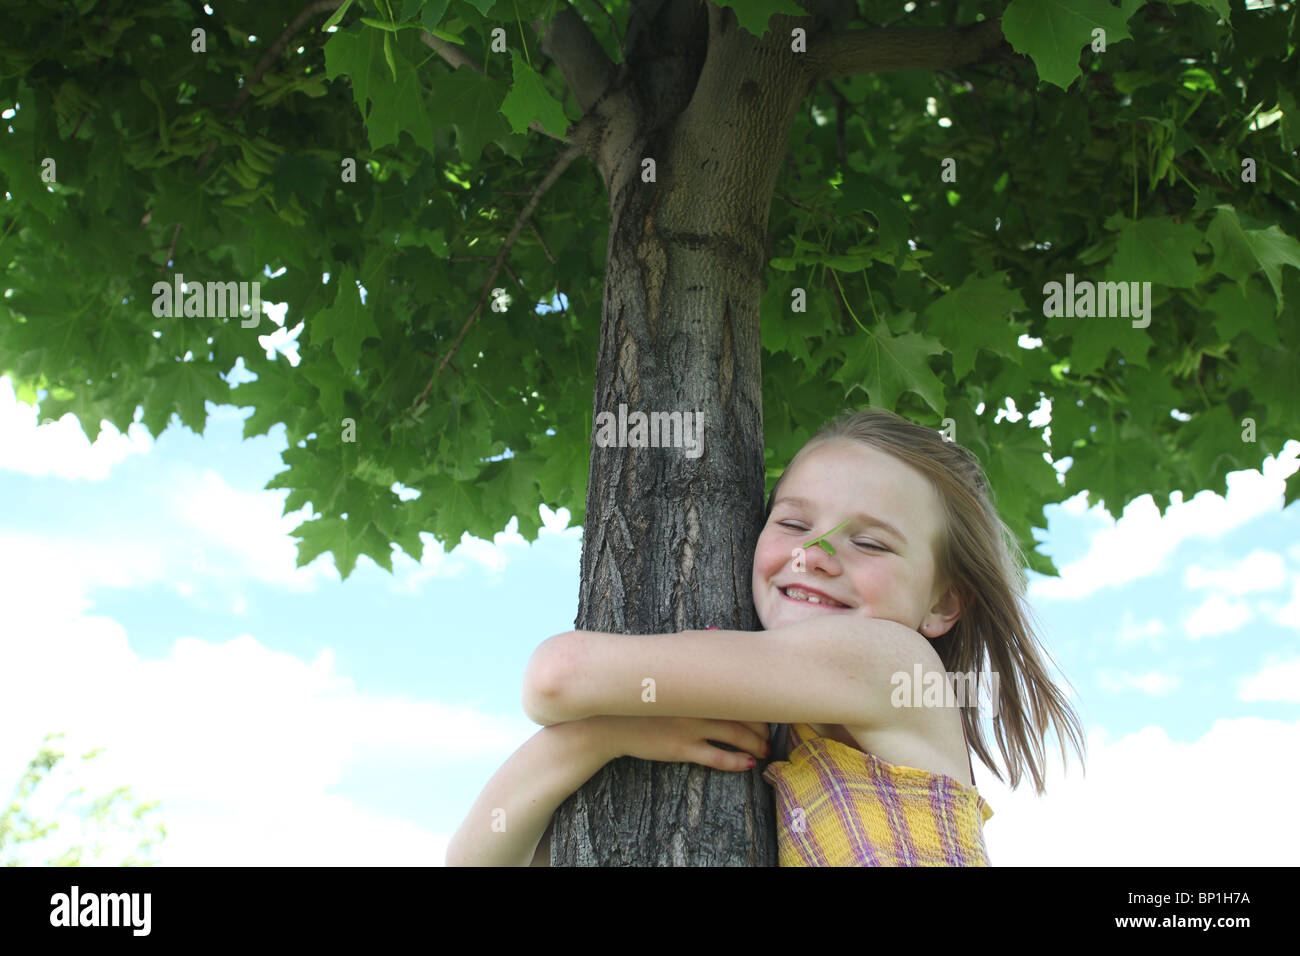 girl hugging maple tree - Stock Image